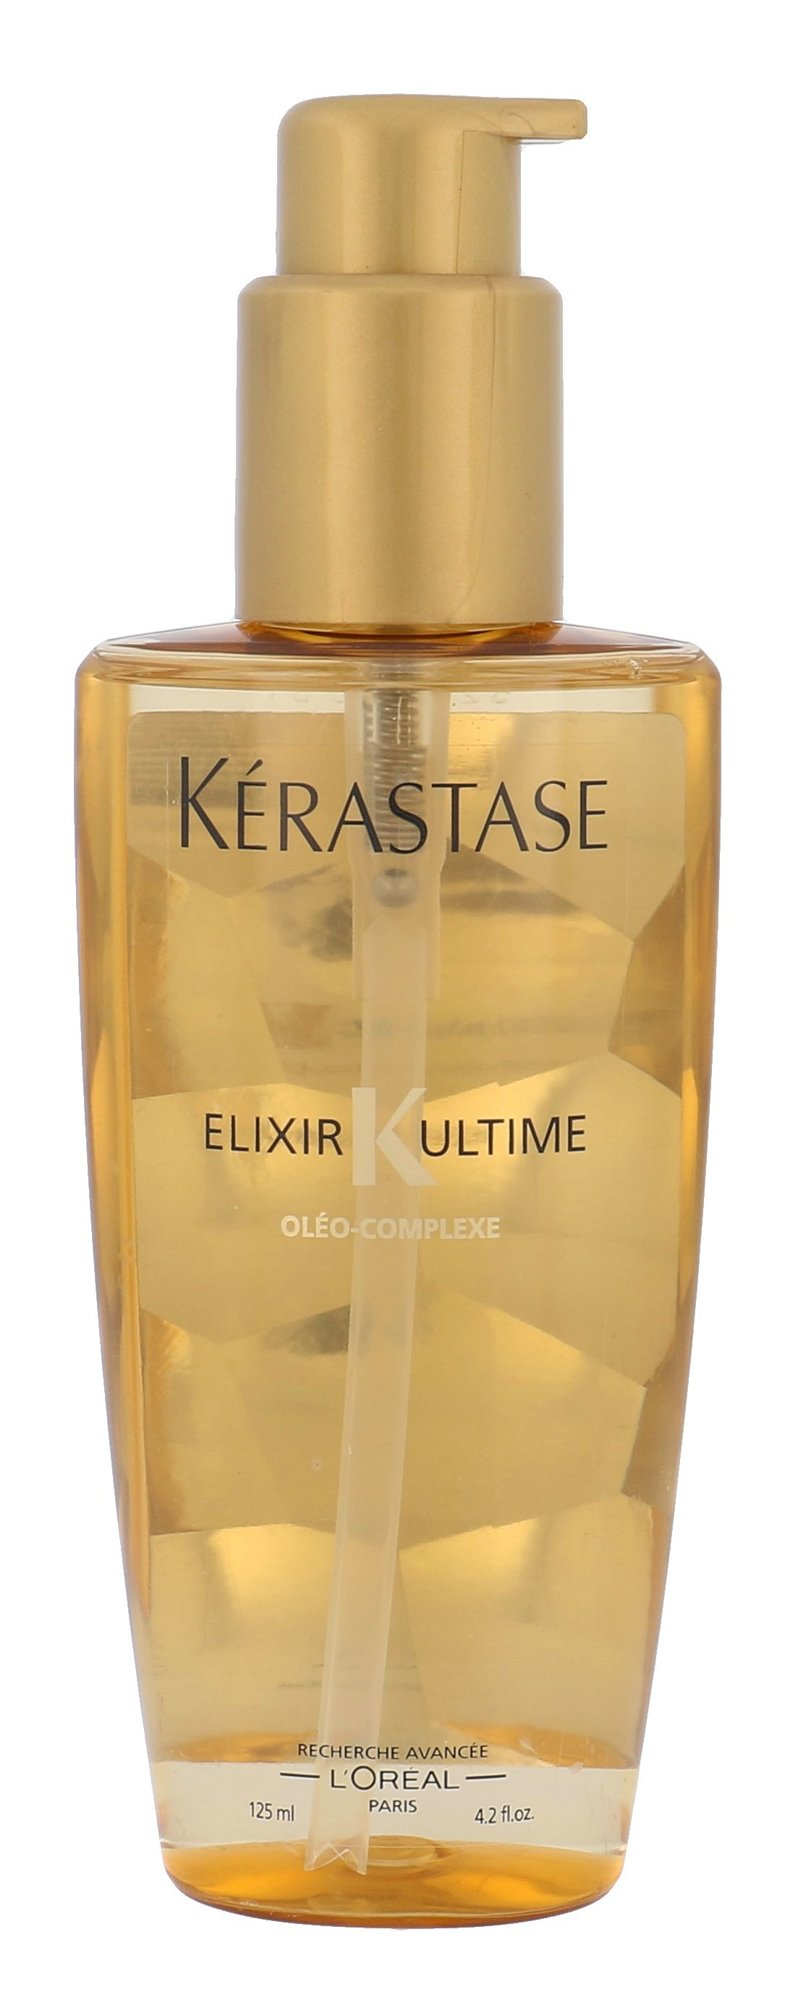 Kérastase Elixir Ultime Cosmetic 125ml